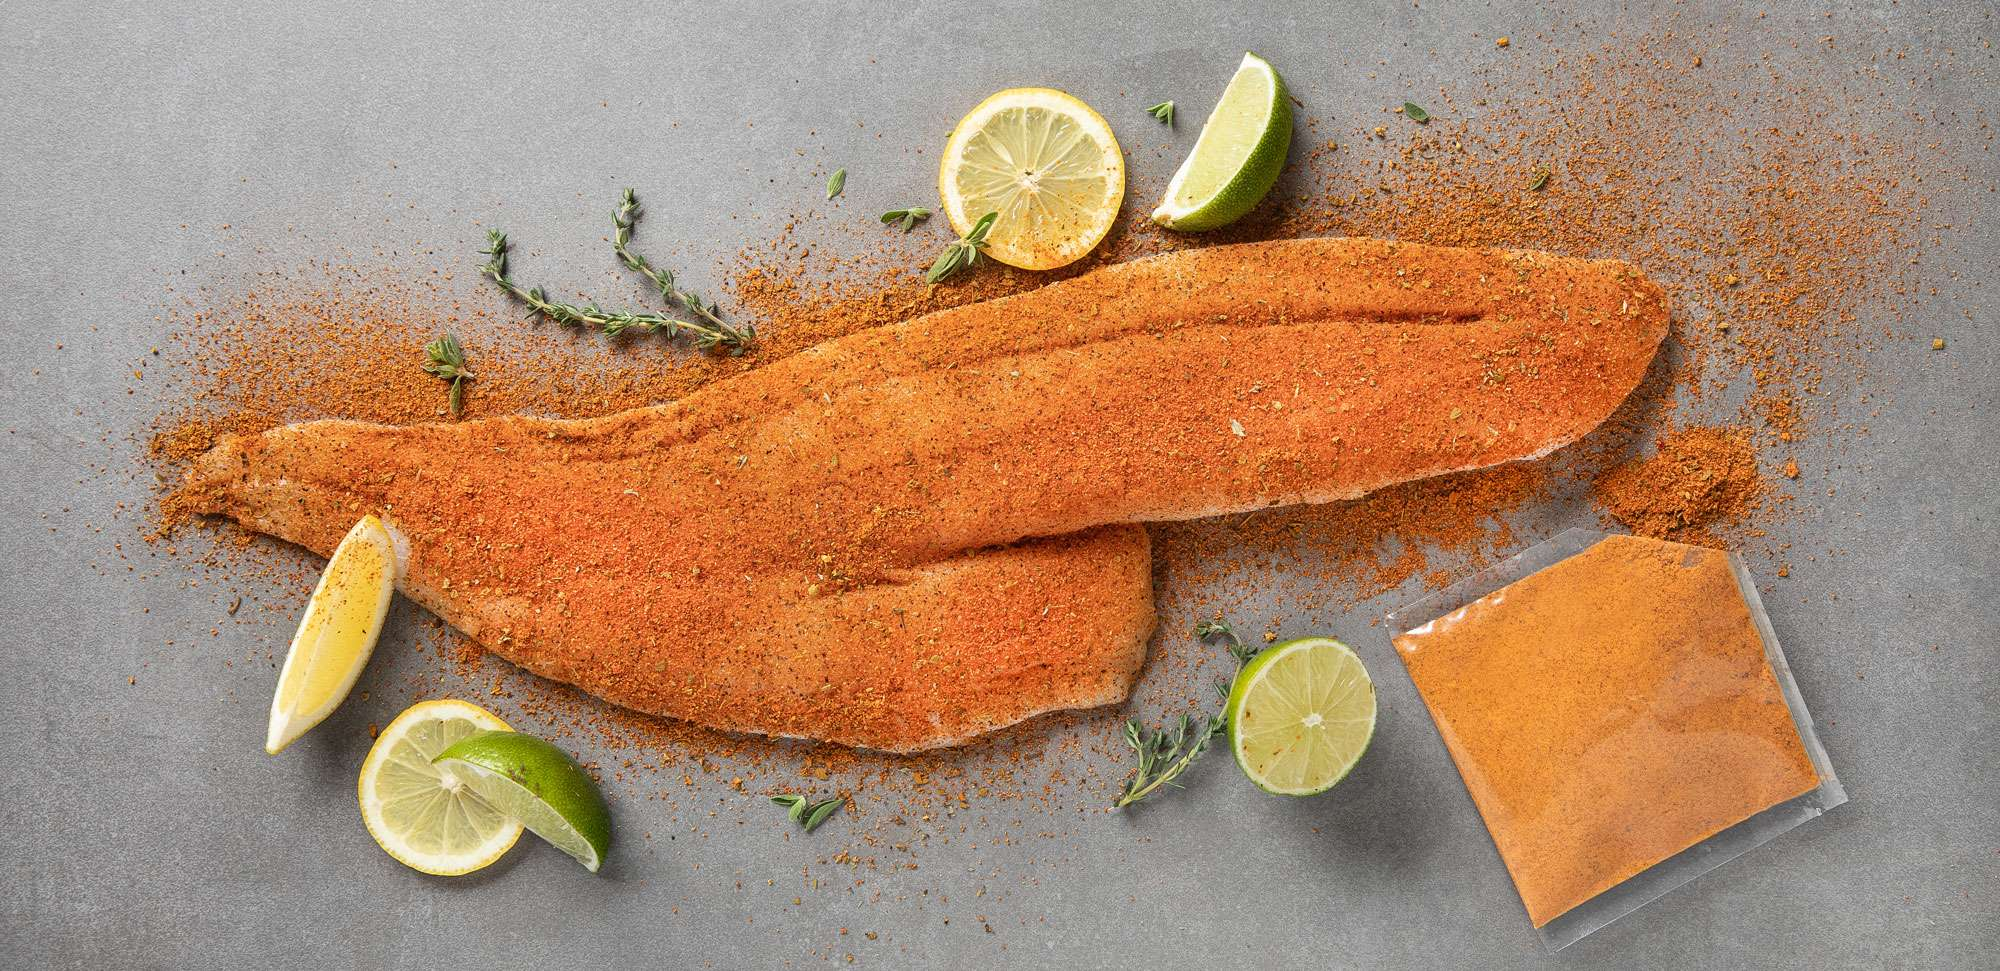 Dry rubbed cod